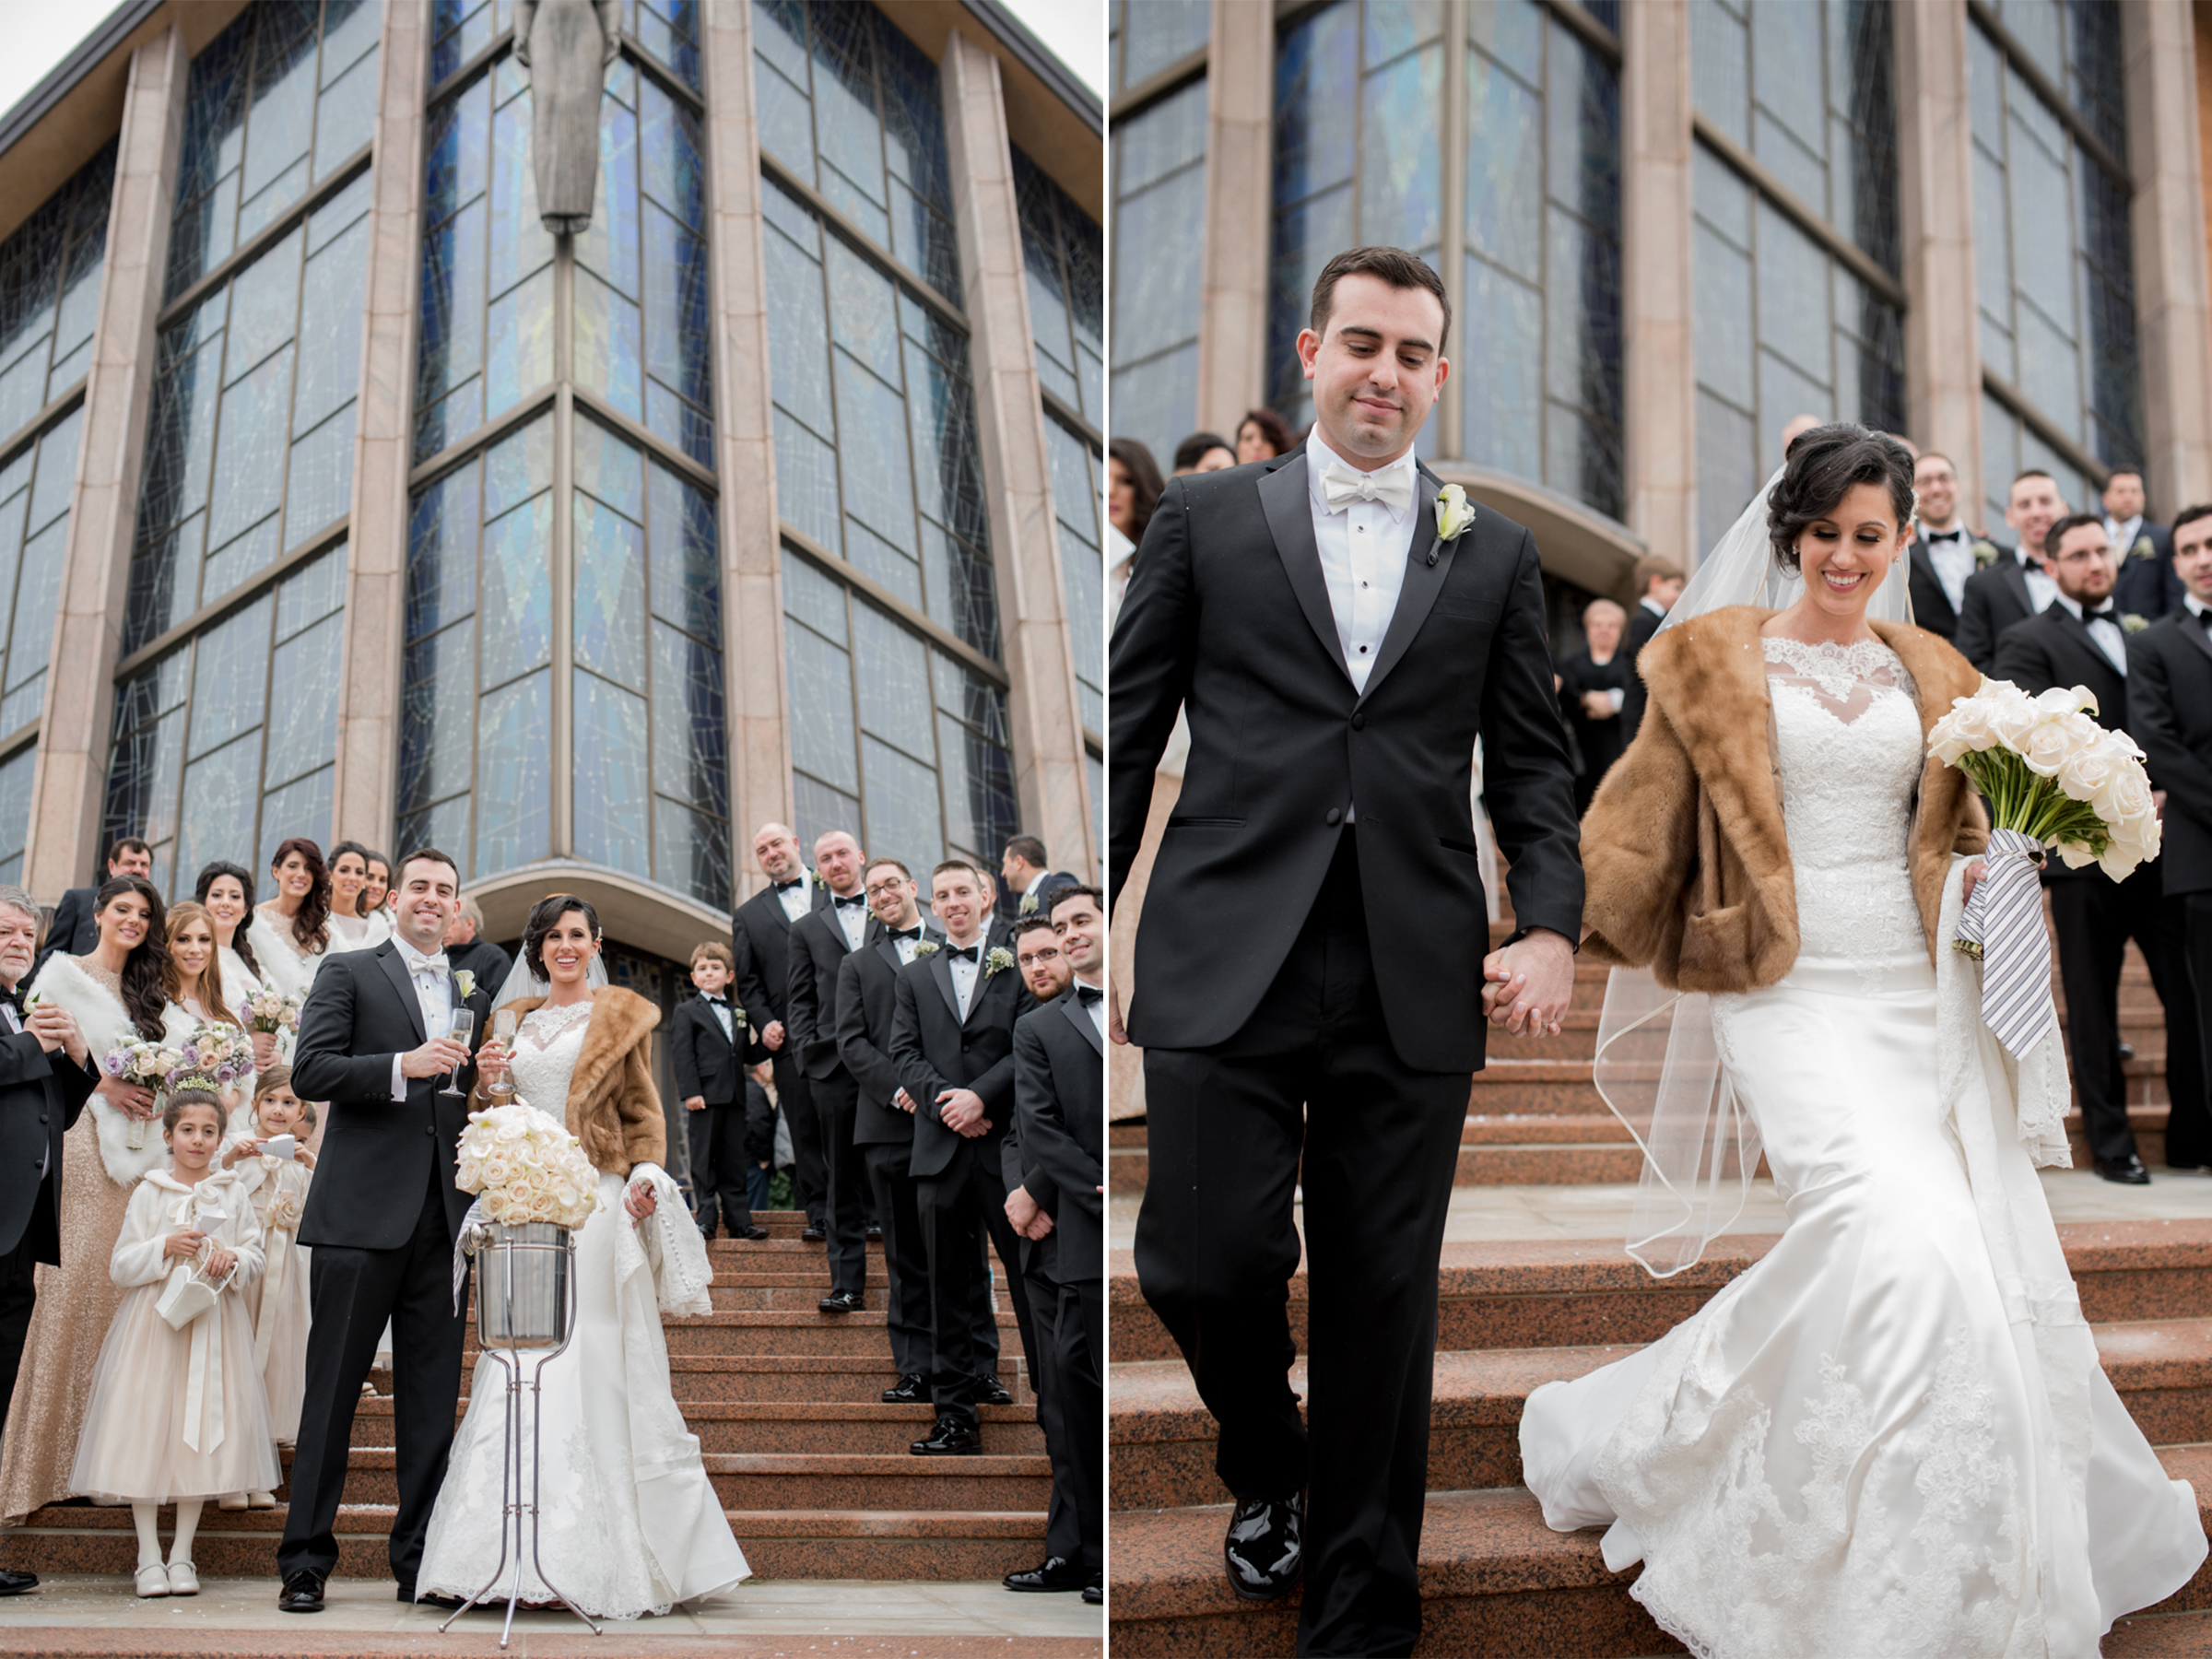 Michelle+Joe- Bride and Groom Leaving Church - Ryland Inn Winter Wedding - New Jersey - Olivia Christina Photo.jpg